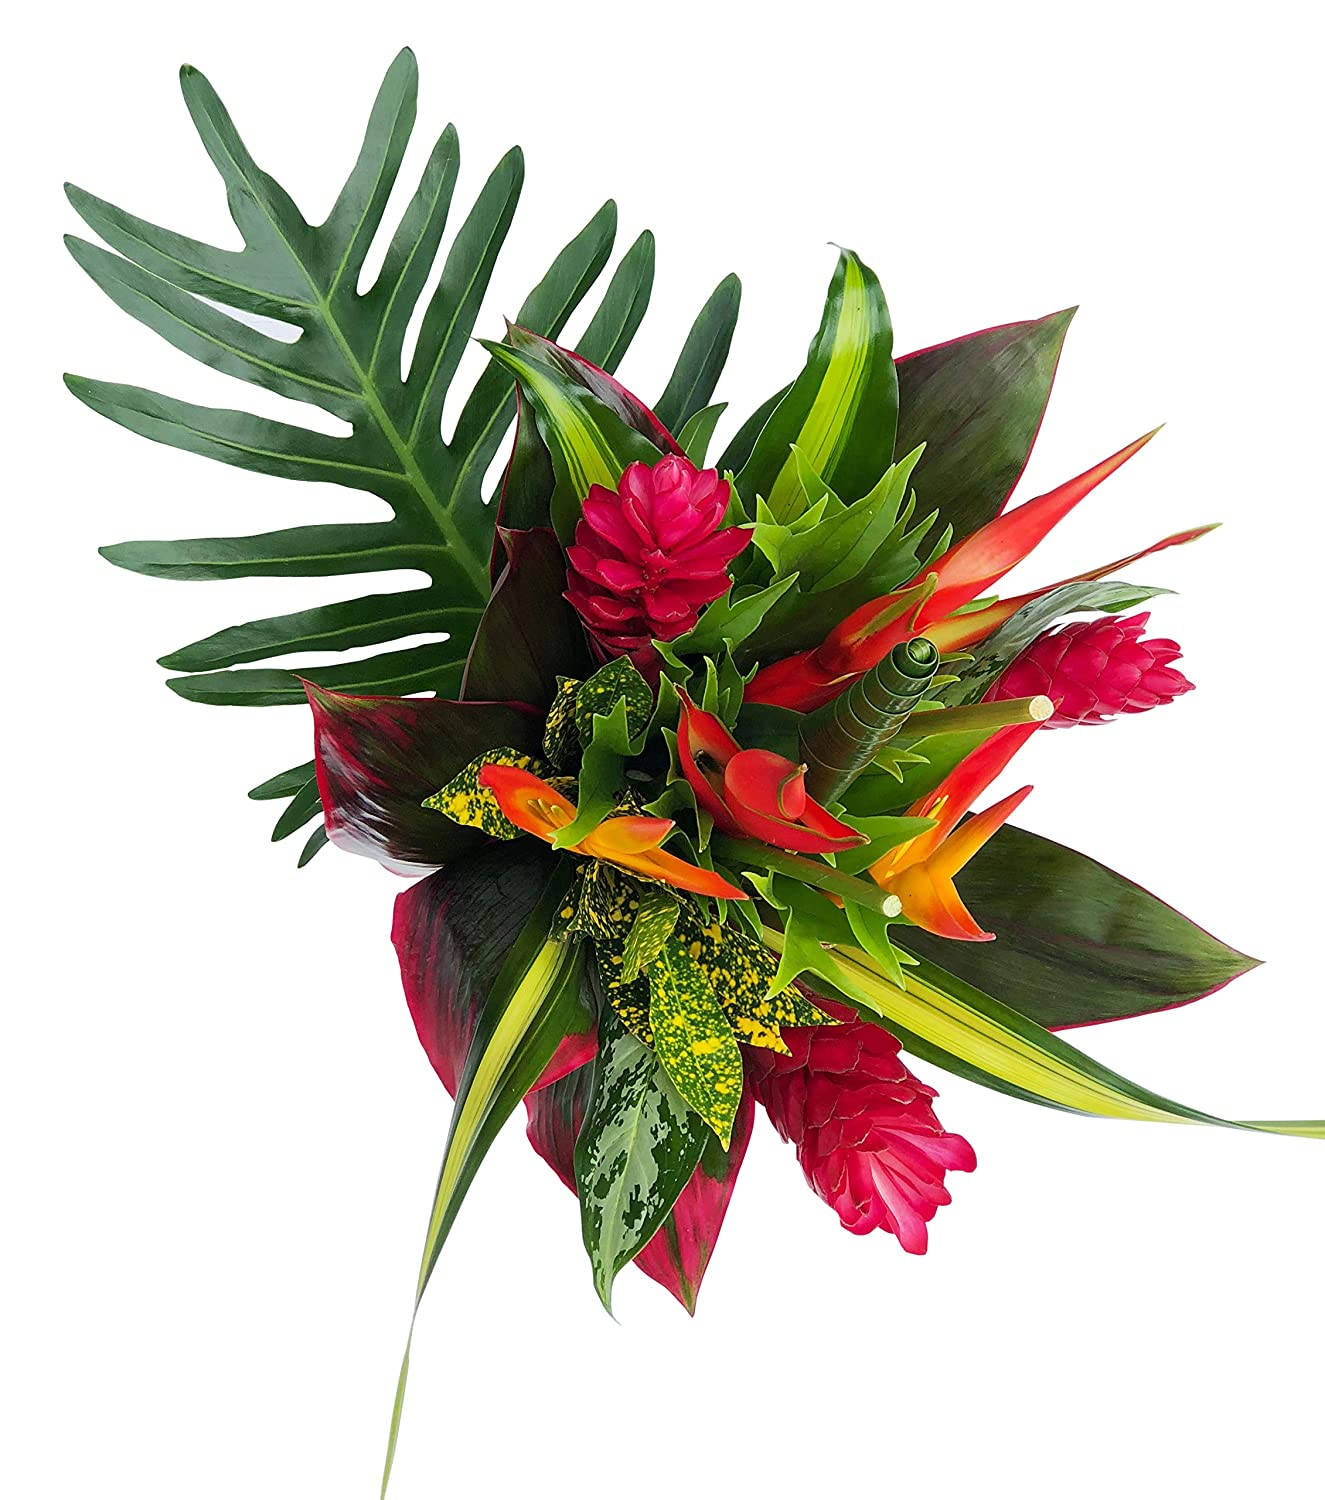 006676458d0 Amazon.com : Tropical Bouquet Tropical Treasure with Bright Birds of  Paradise, Pink Ginger, and Bold Tropical Greenery : Garden & Outdoor